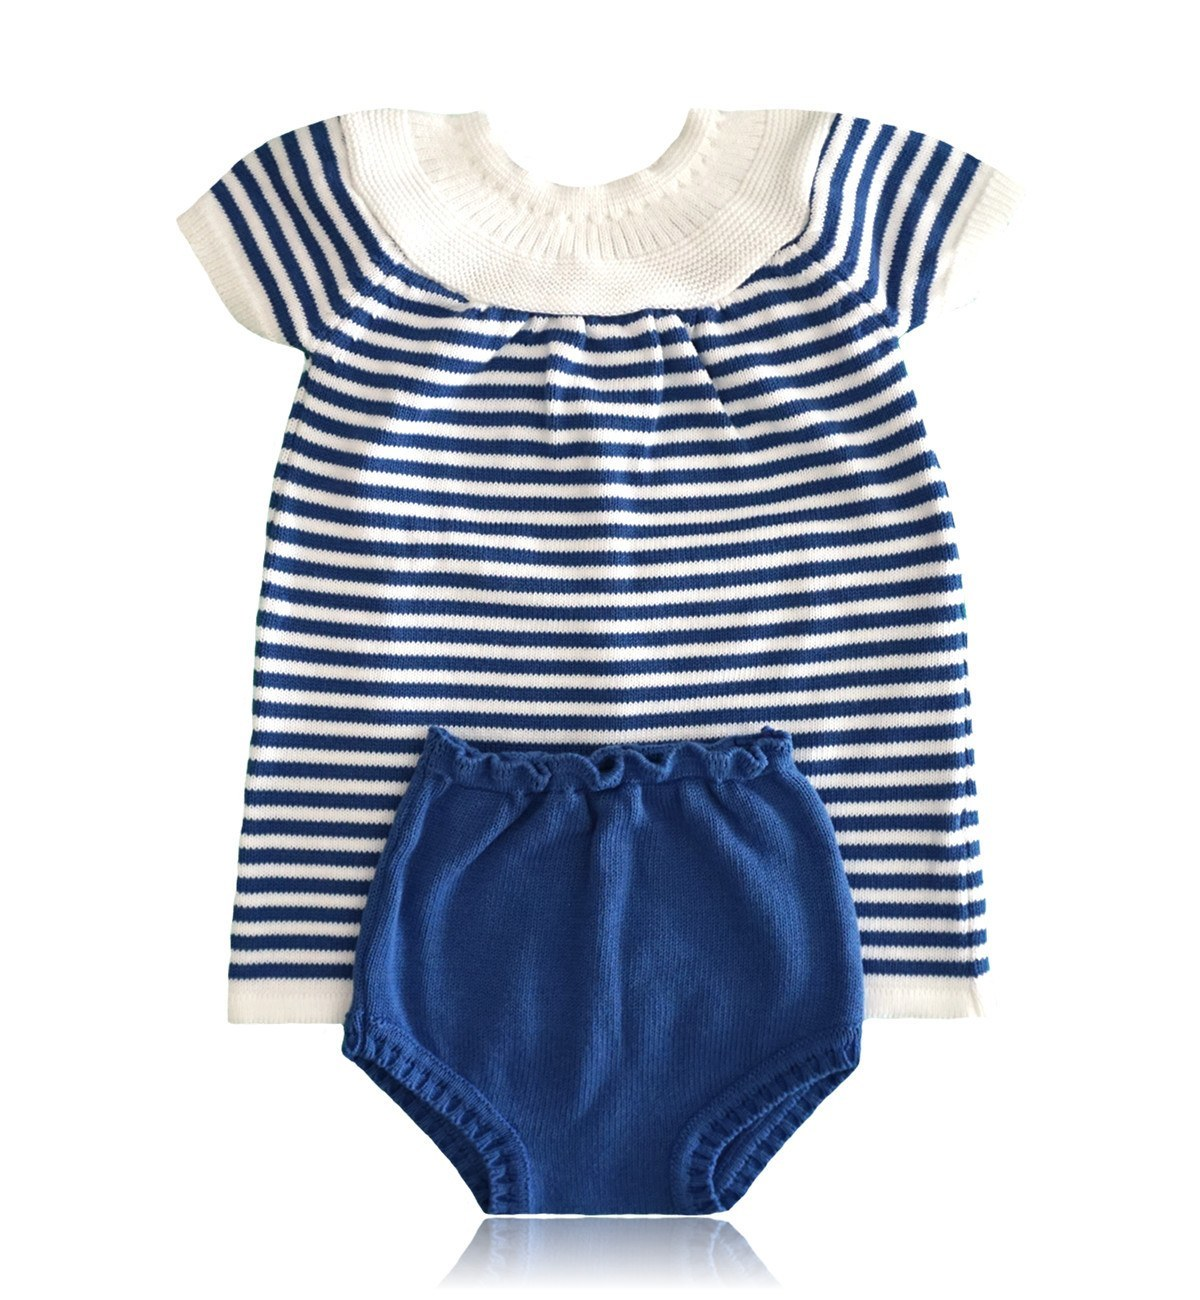 Spanish baby clothes | baby Dress | Blue and white two piece dress set |babymaC  - 1